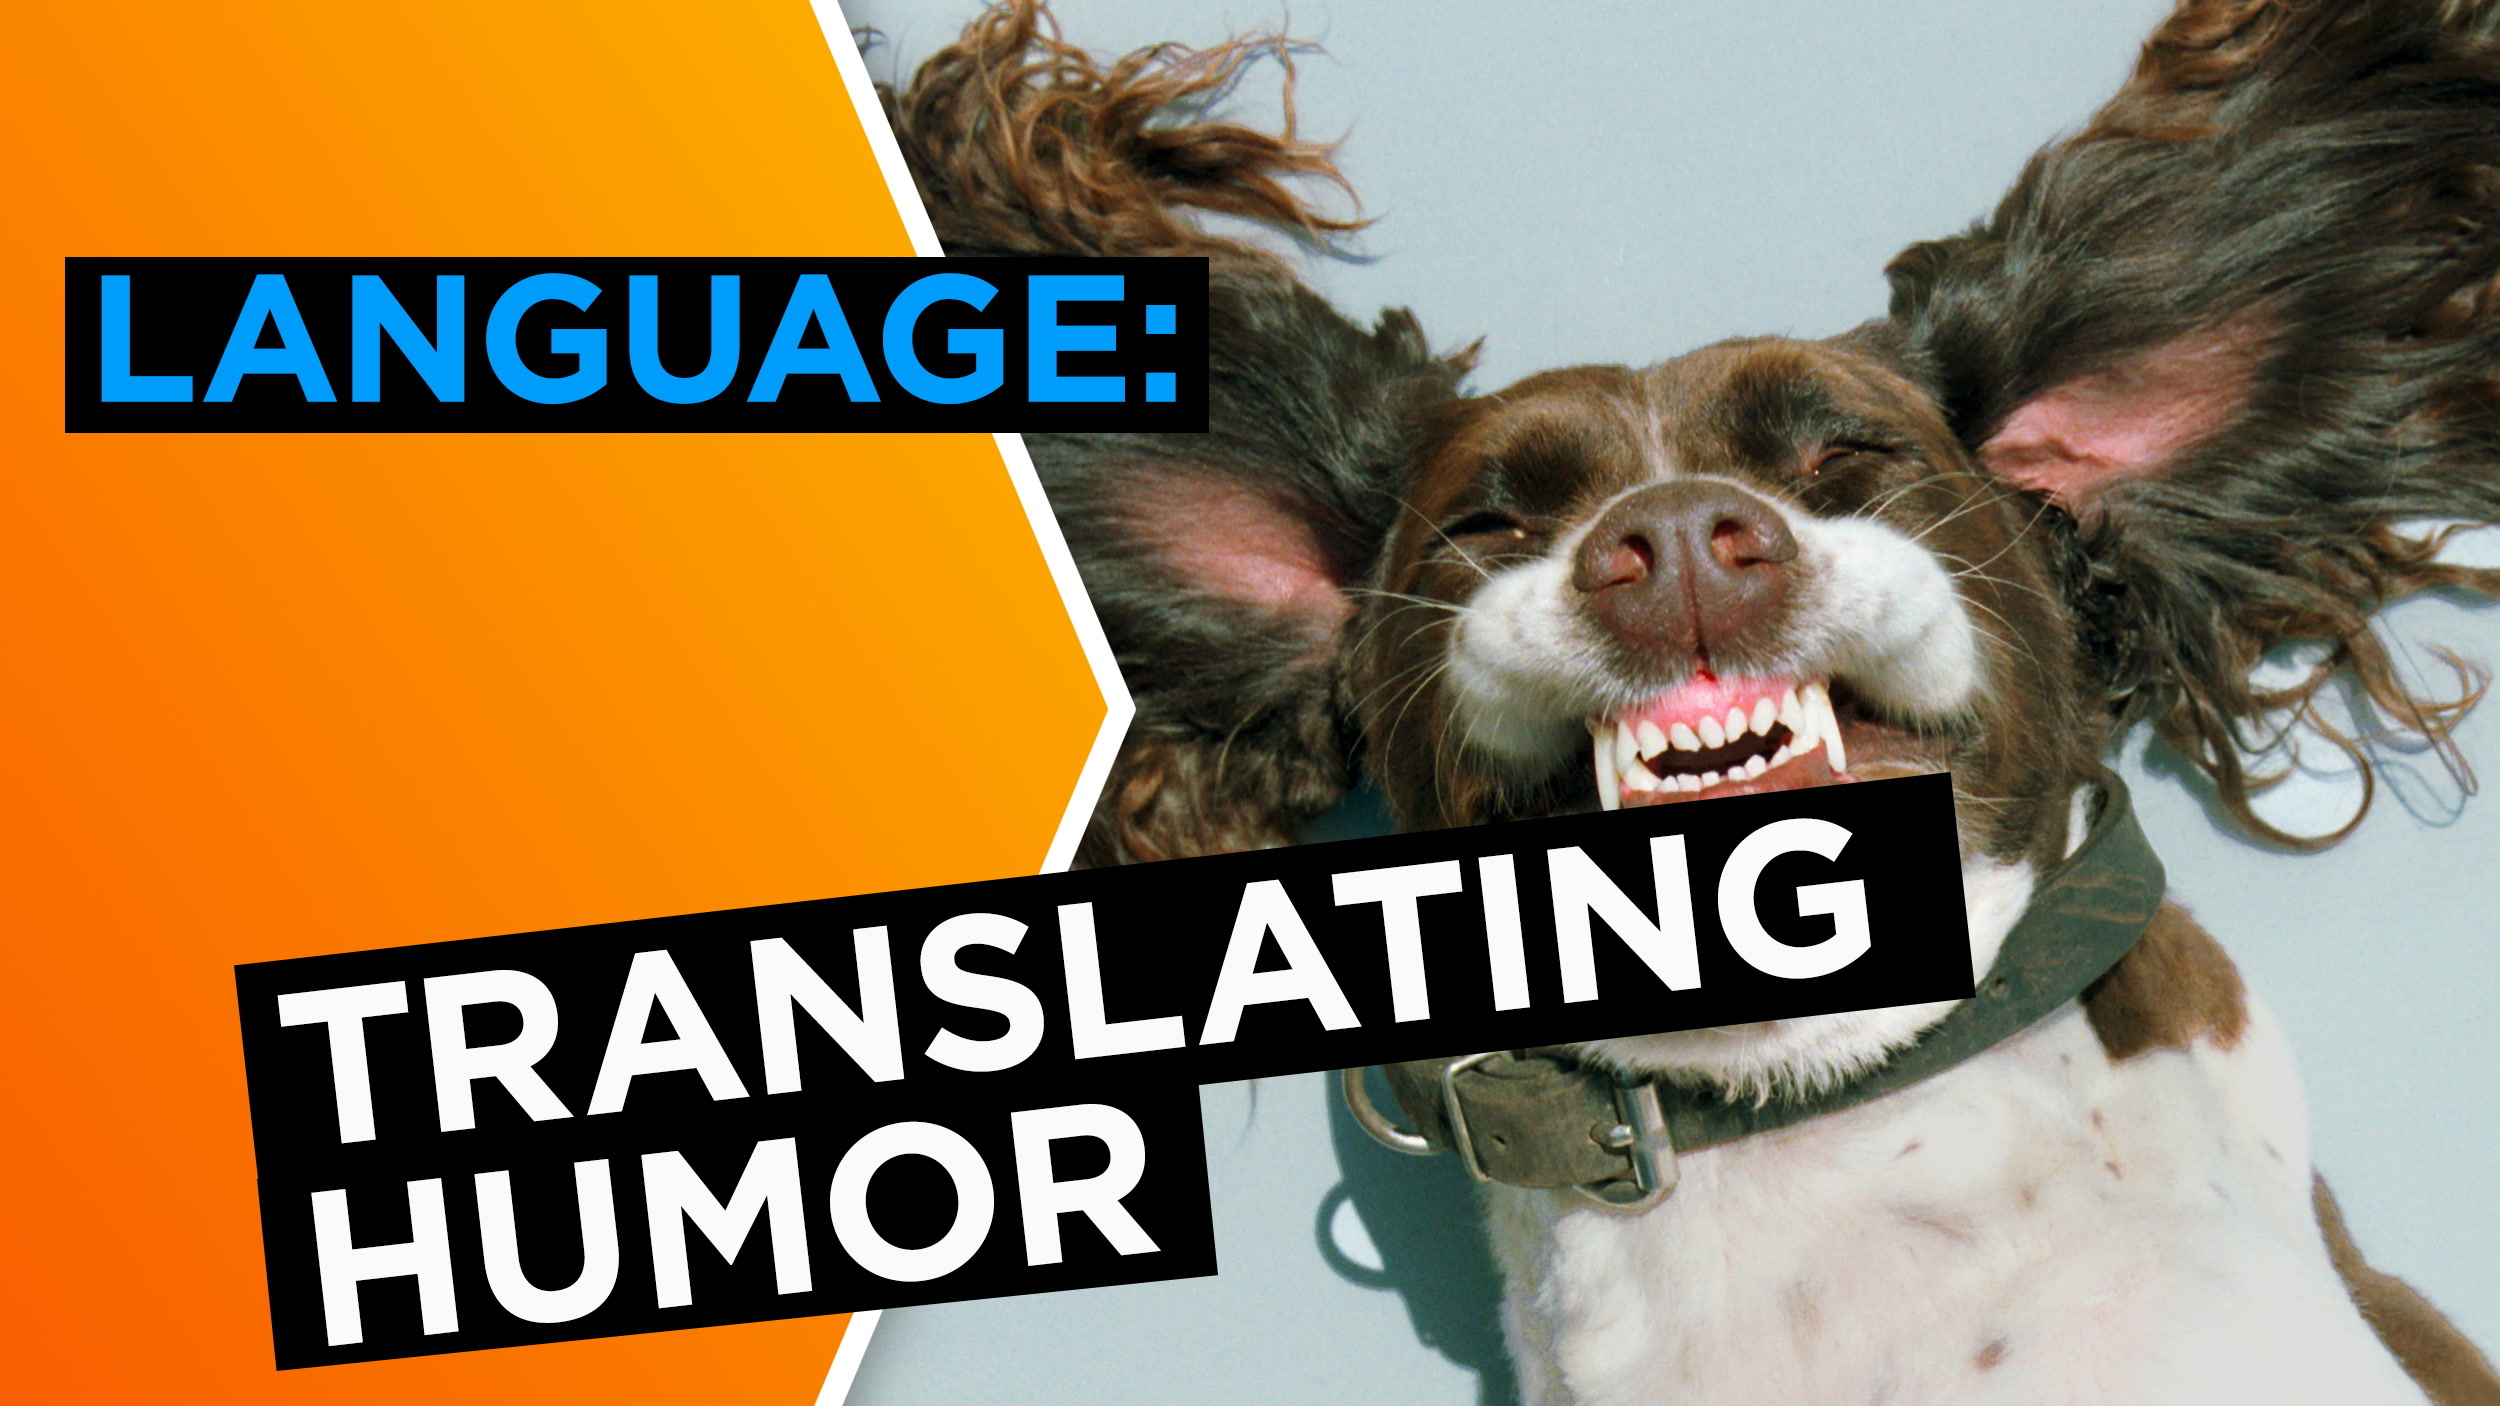 What's funny? How comedians translate humor.